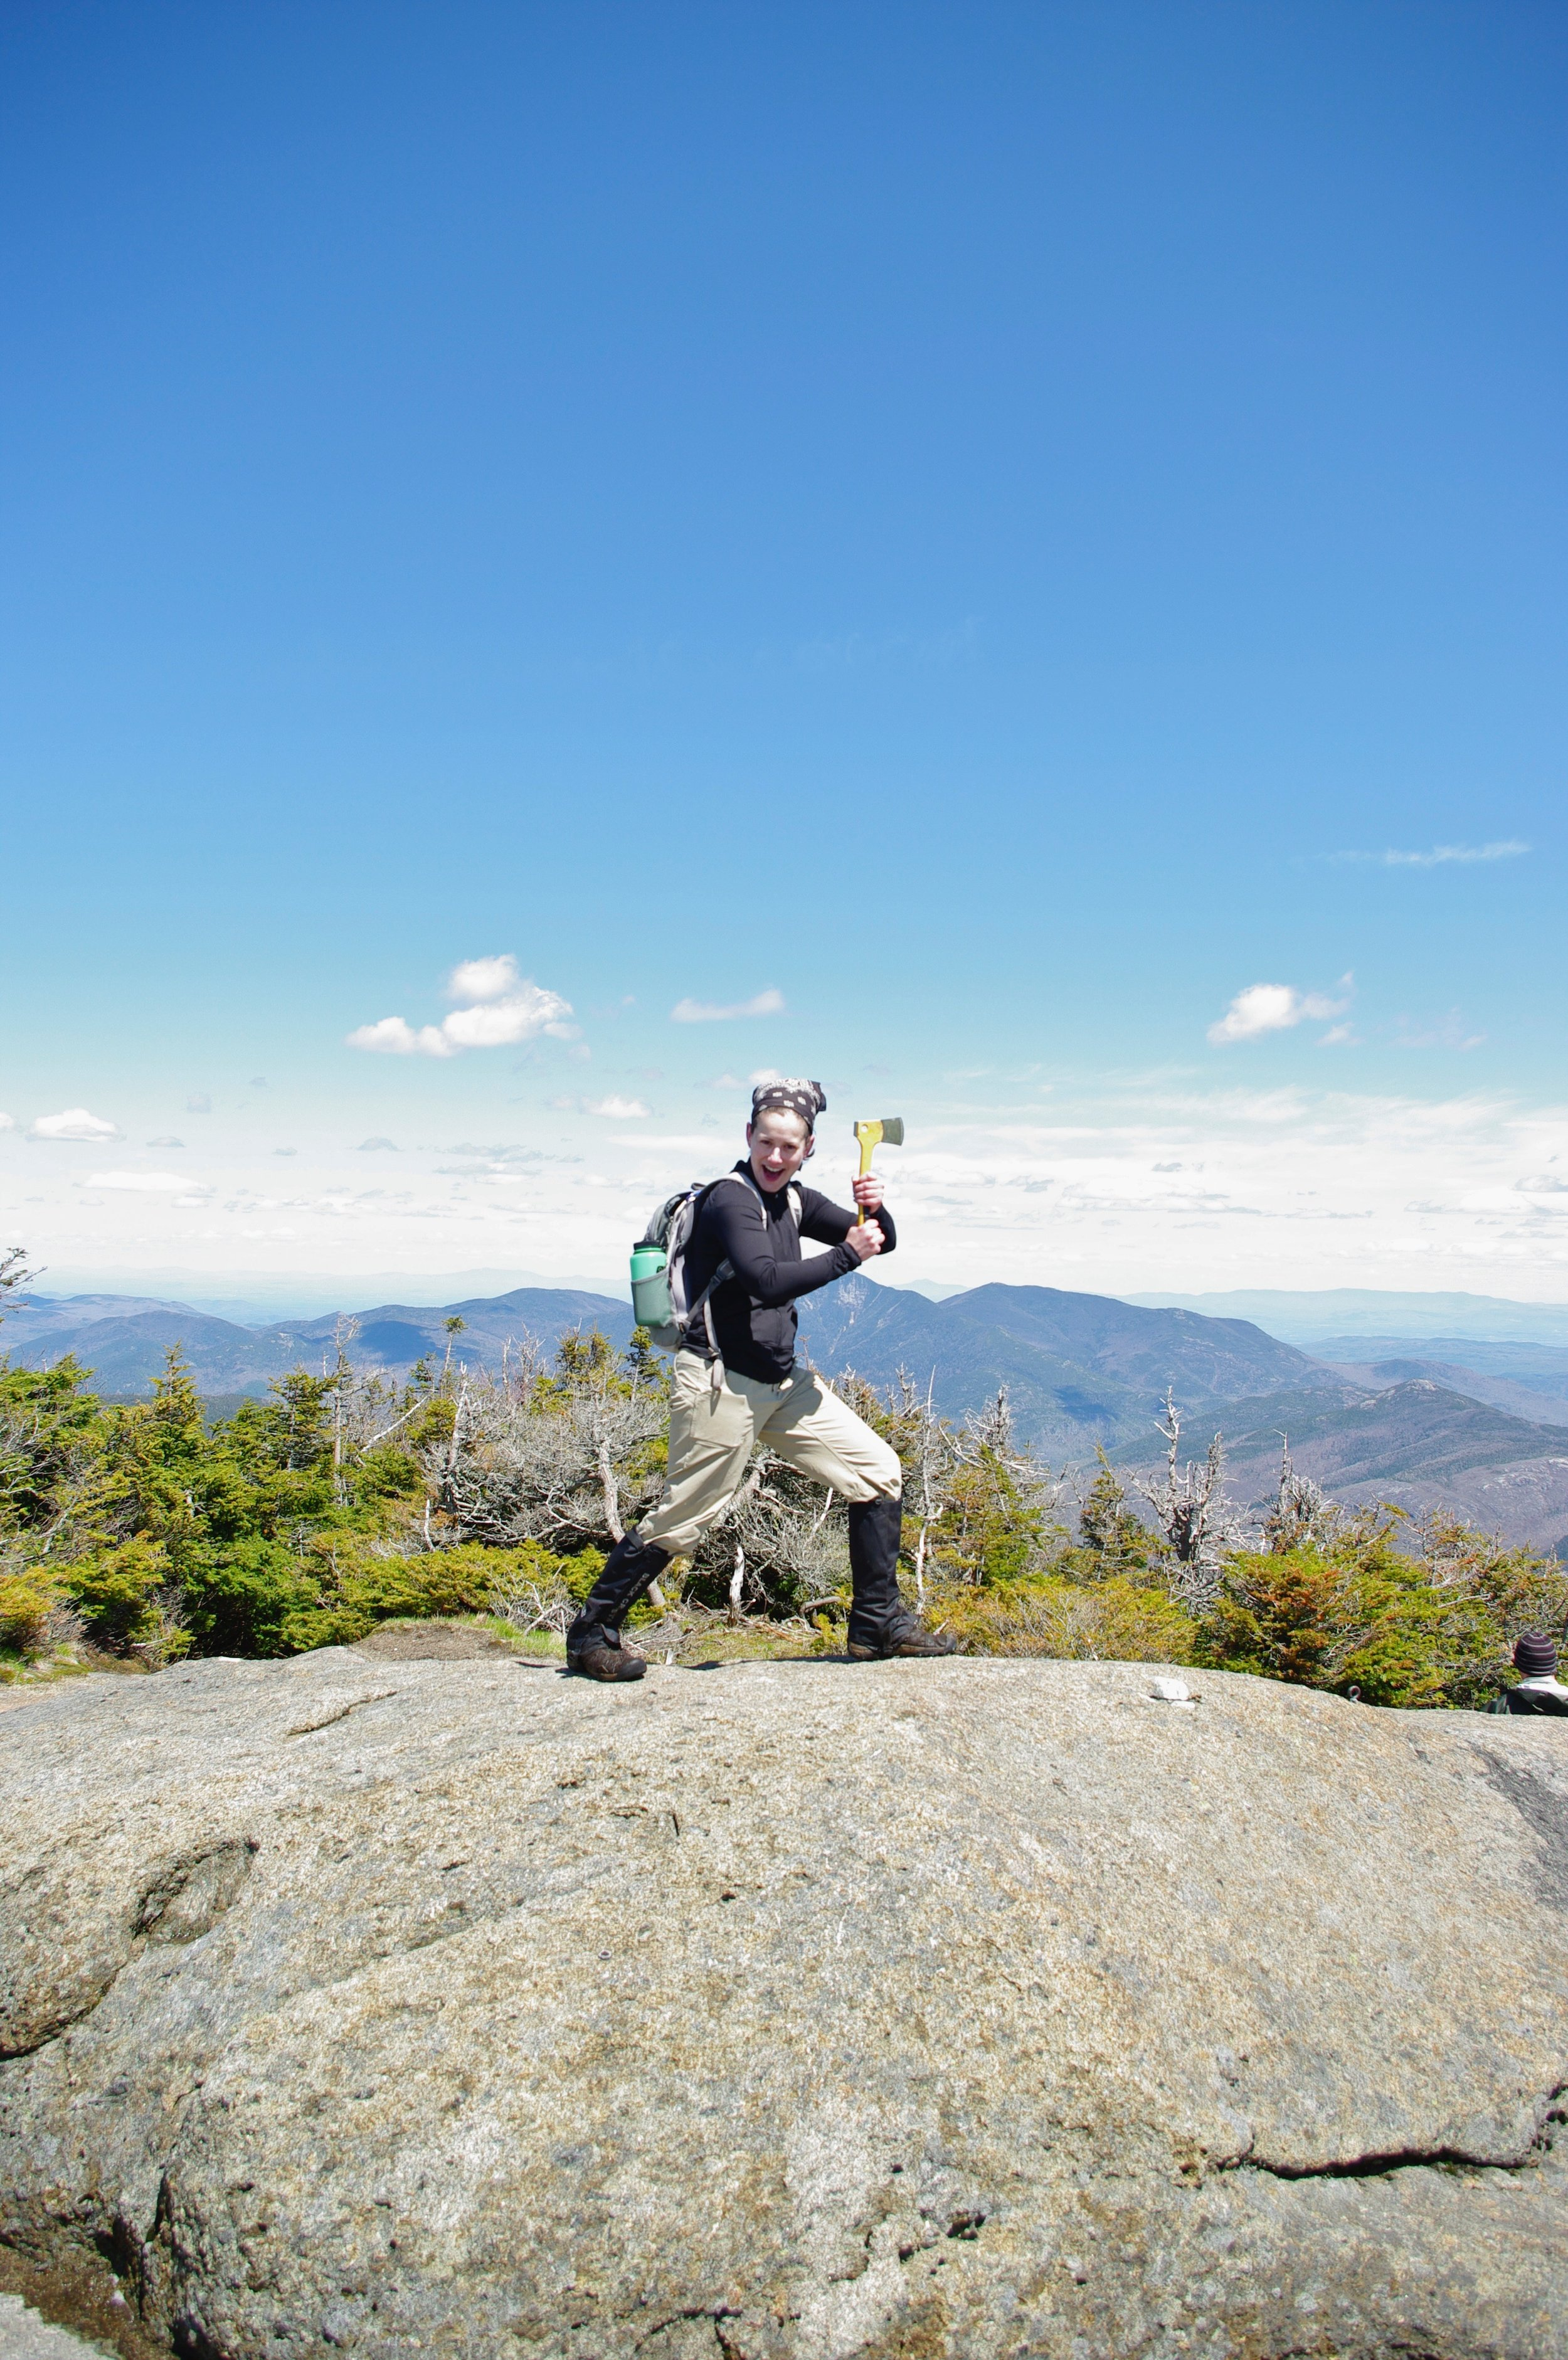 ...just look at that outdoorsy enthusiasm,at the peak of Gothics Mountain in the Adirondacks.